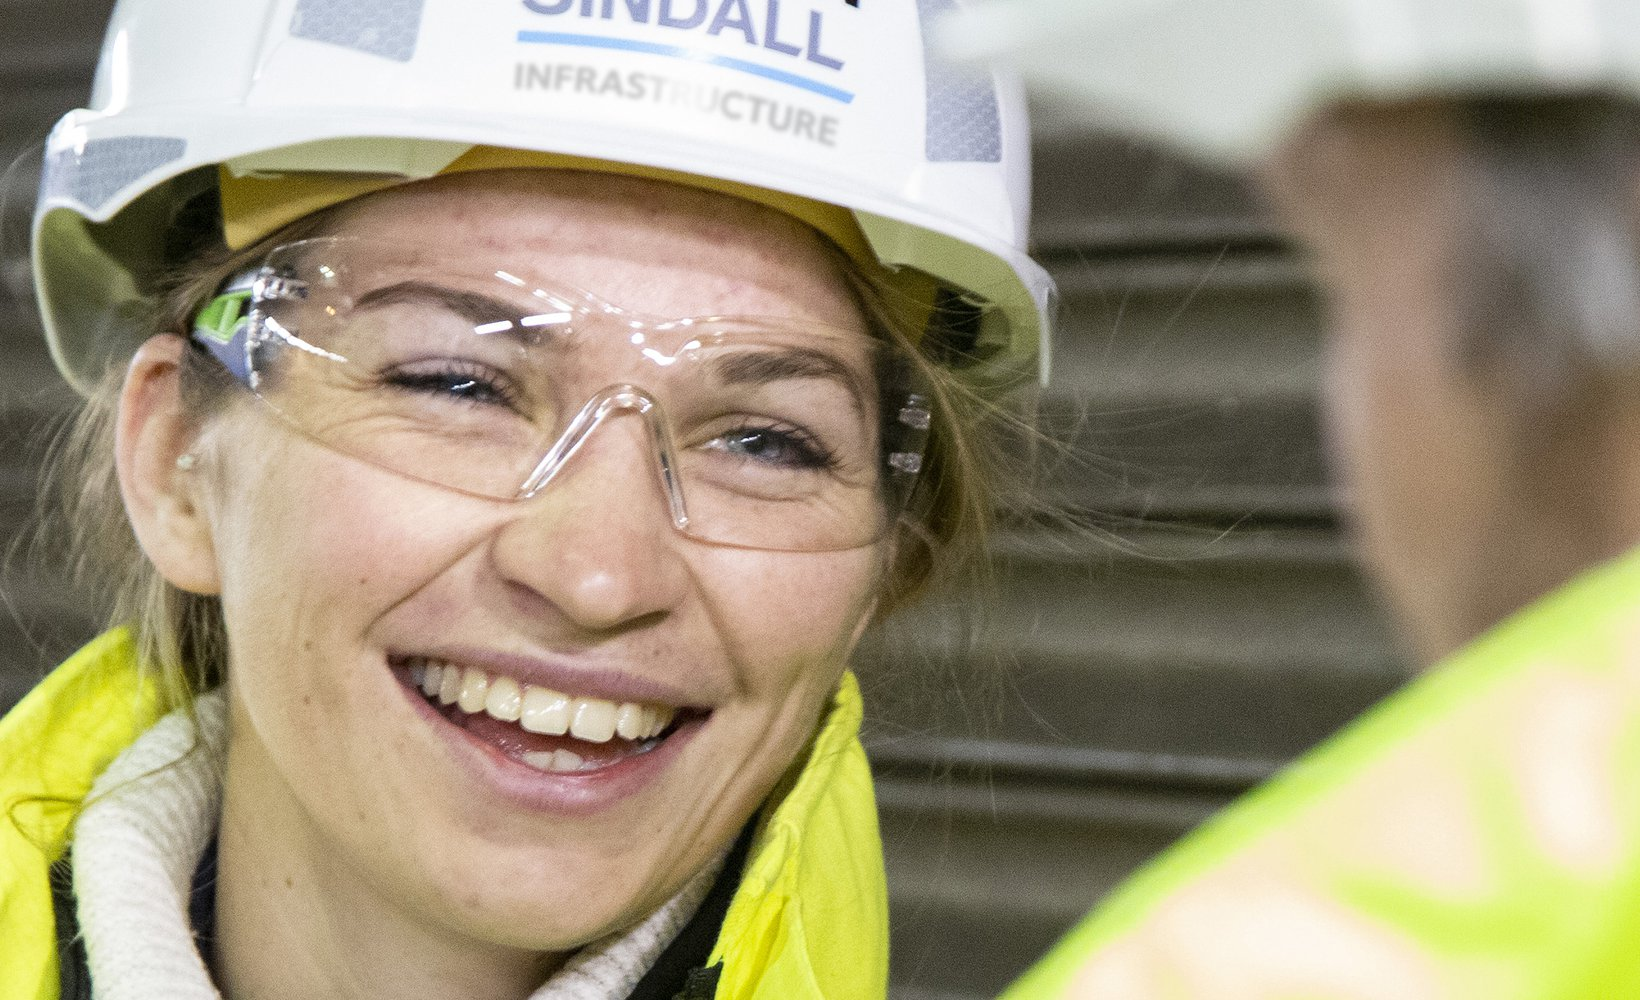 A smiling Morgan Sindall Infrastructure colleague is pictured smiling at a fellow colleague who is facing away from the camera.